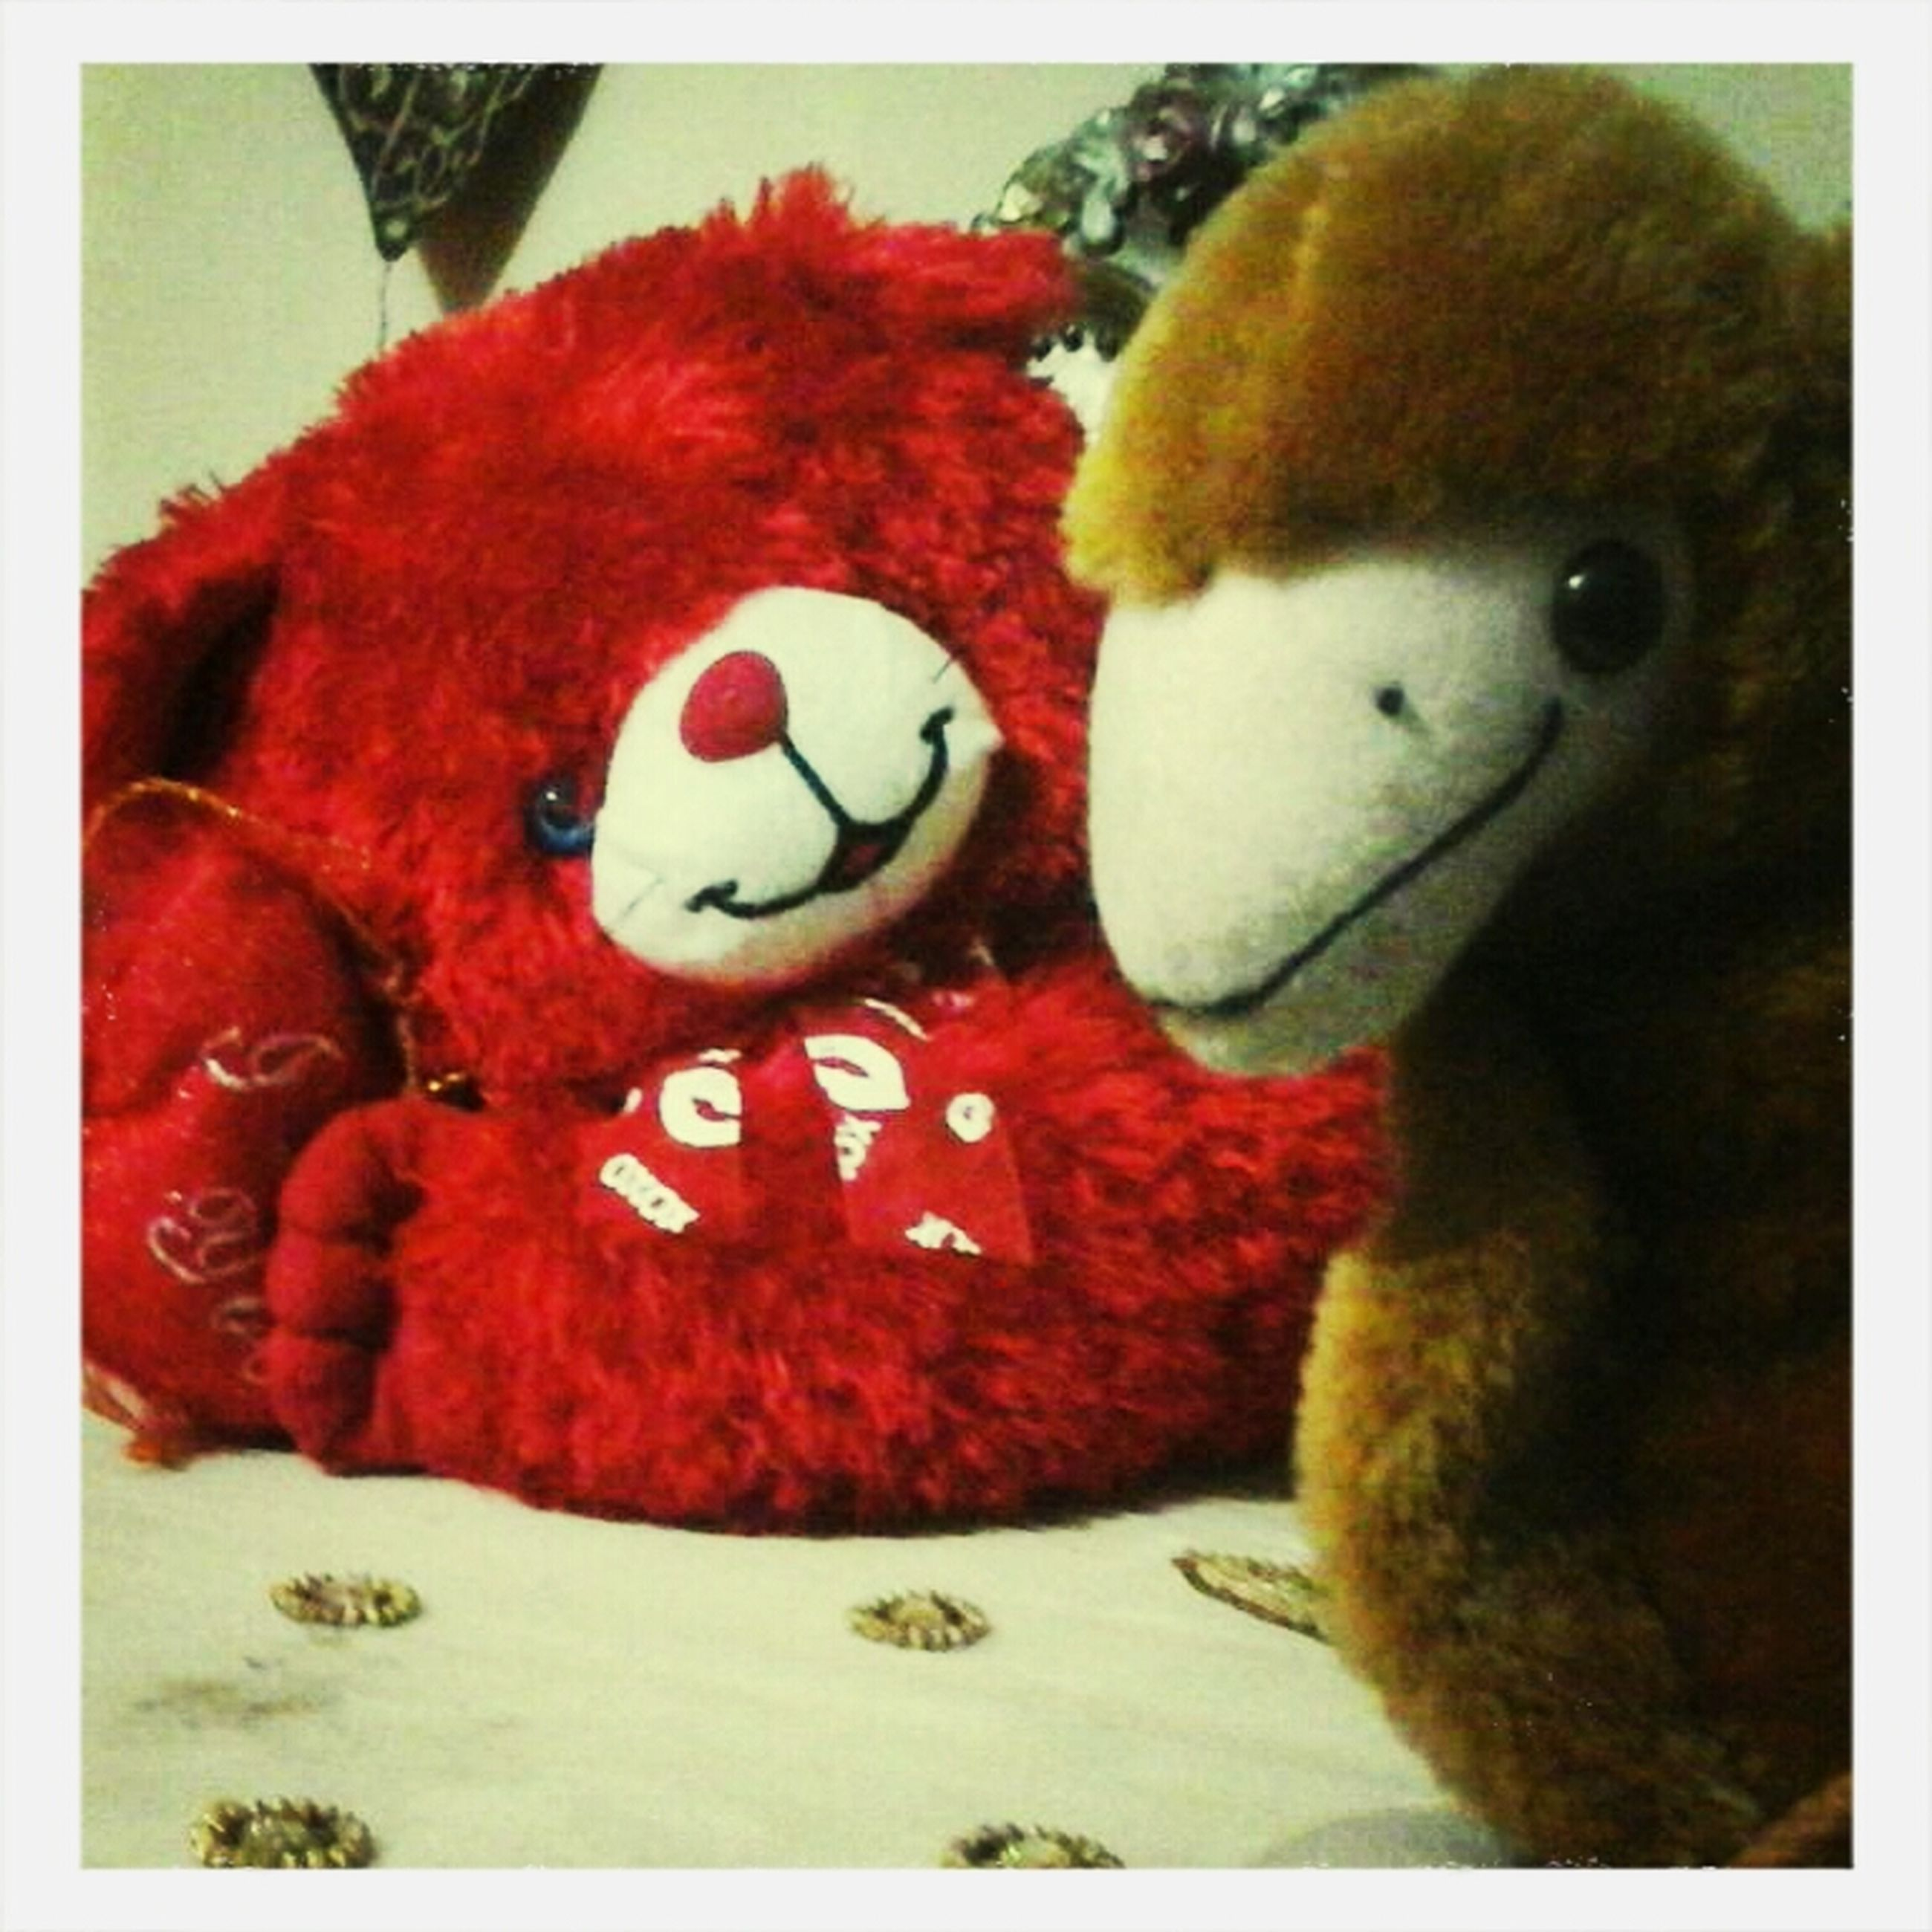 transfer print, auto post production filter, indoors, toy, animal representation, still life, close-up, high angle view, stuffed toy, food, table, red, food and drink, no people, childhood, humor, teddy bear, animal themes, sweet food, day